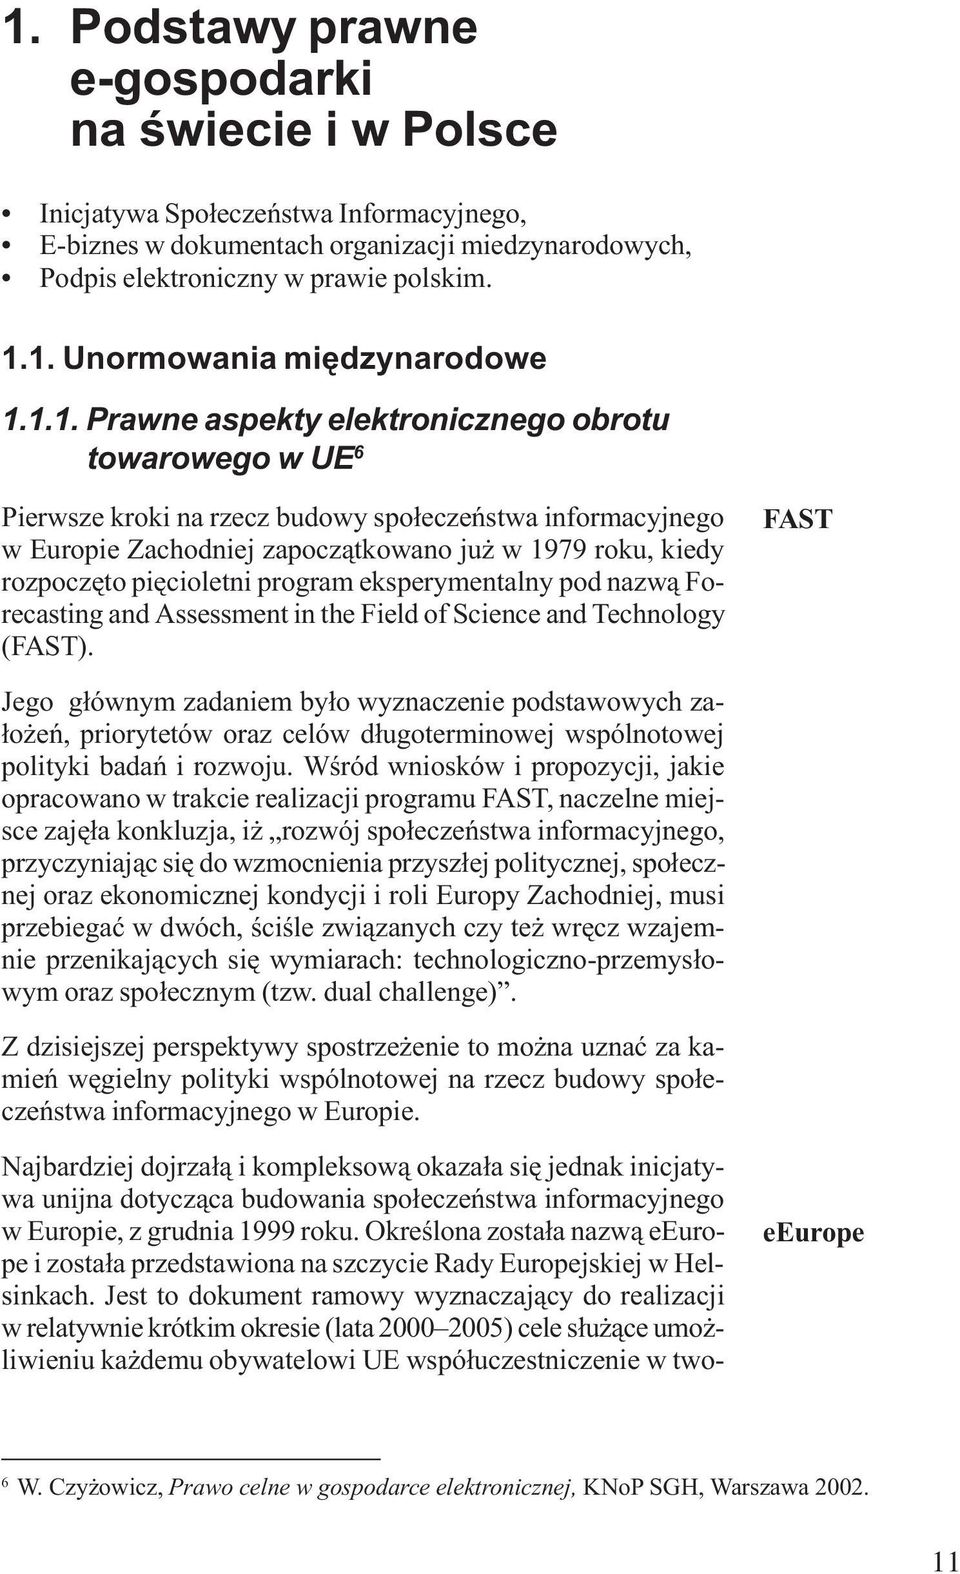 piêcioletni program eksperymentalny pod nazw¹ Forecasting and Assessment in the Field of Science and Technology (FAST).